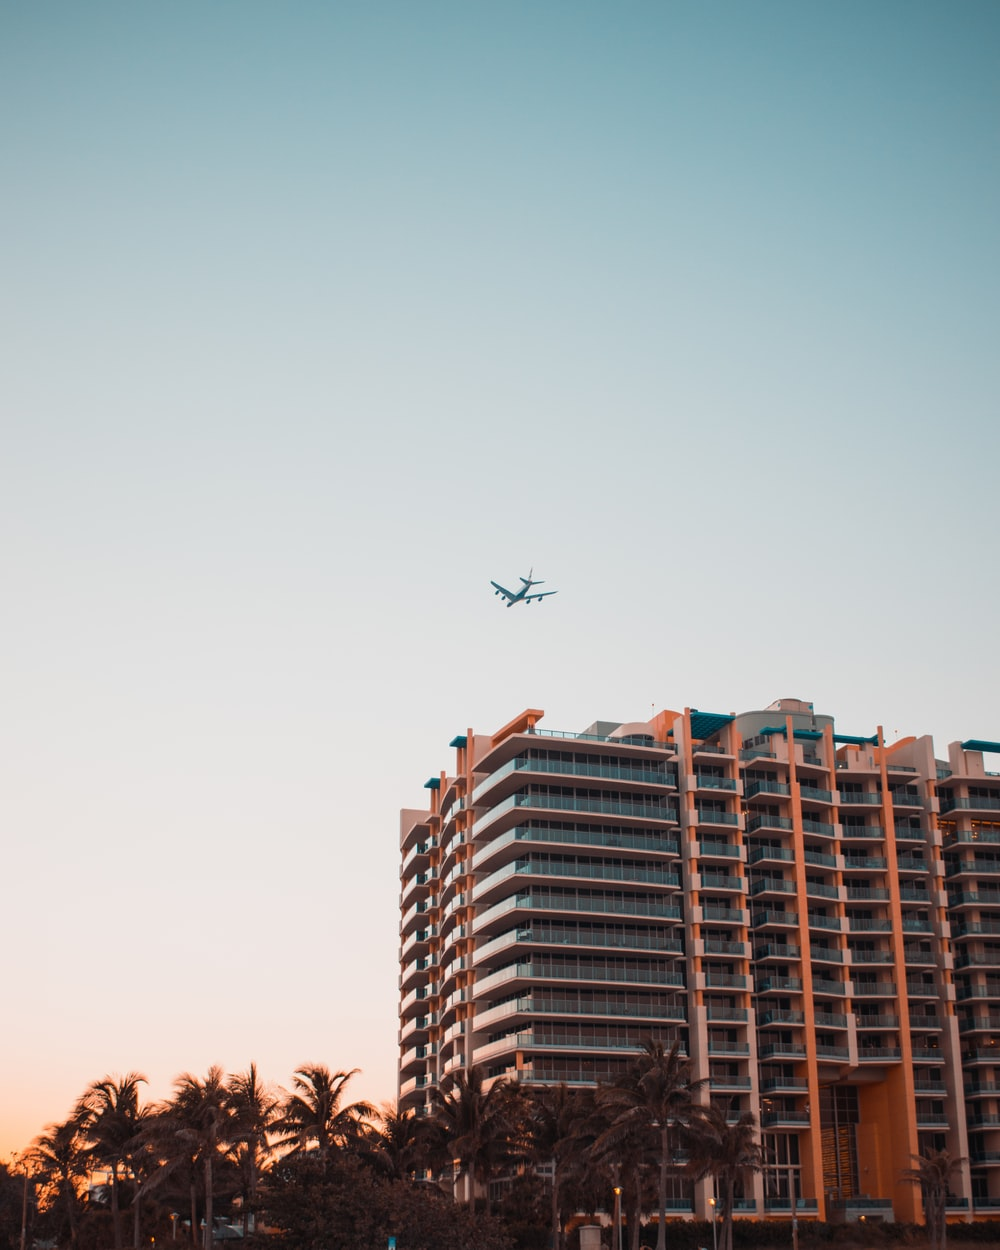 gray airplane above concrete high-rise building